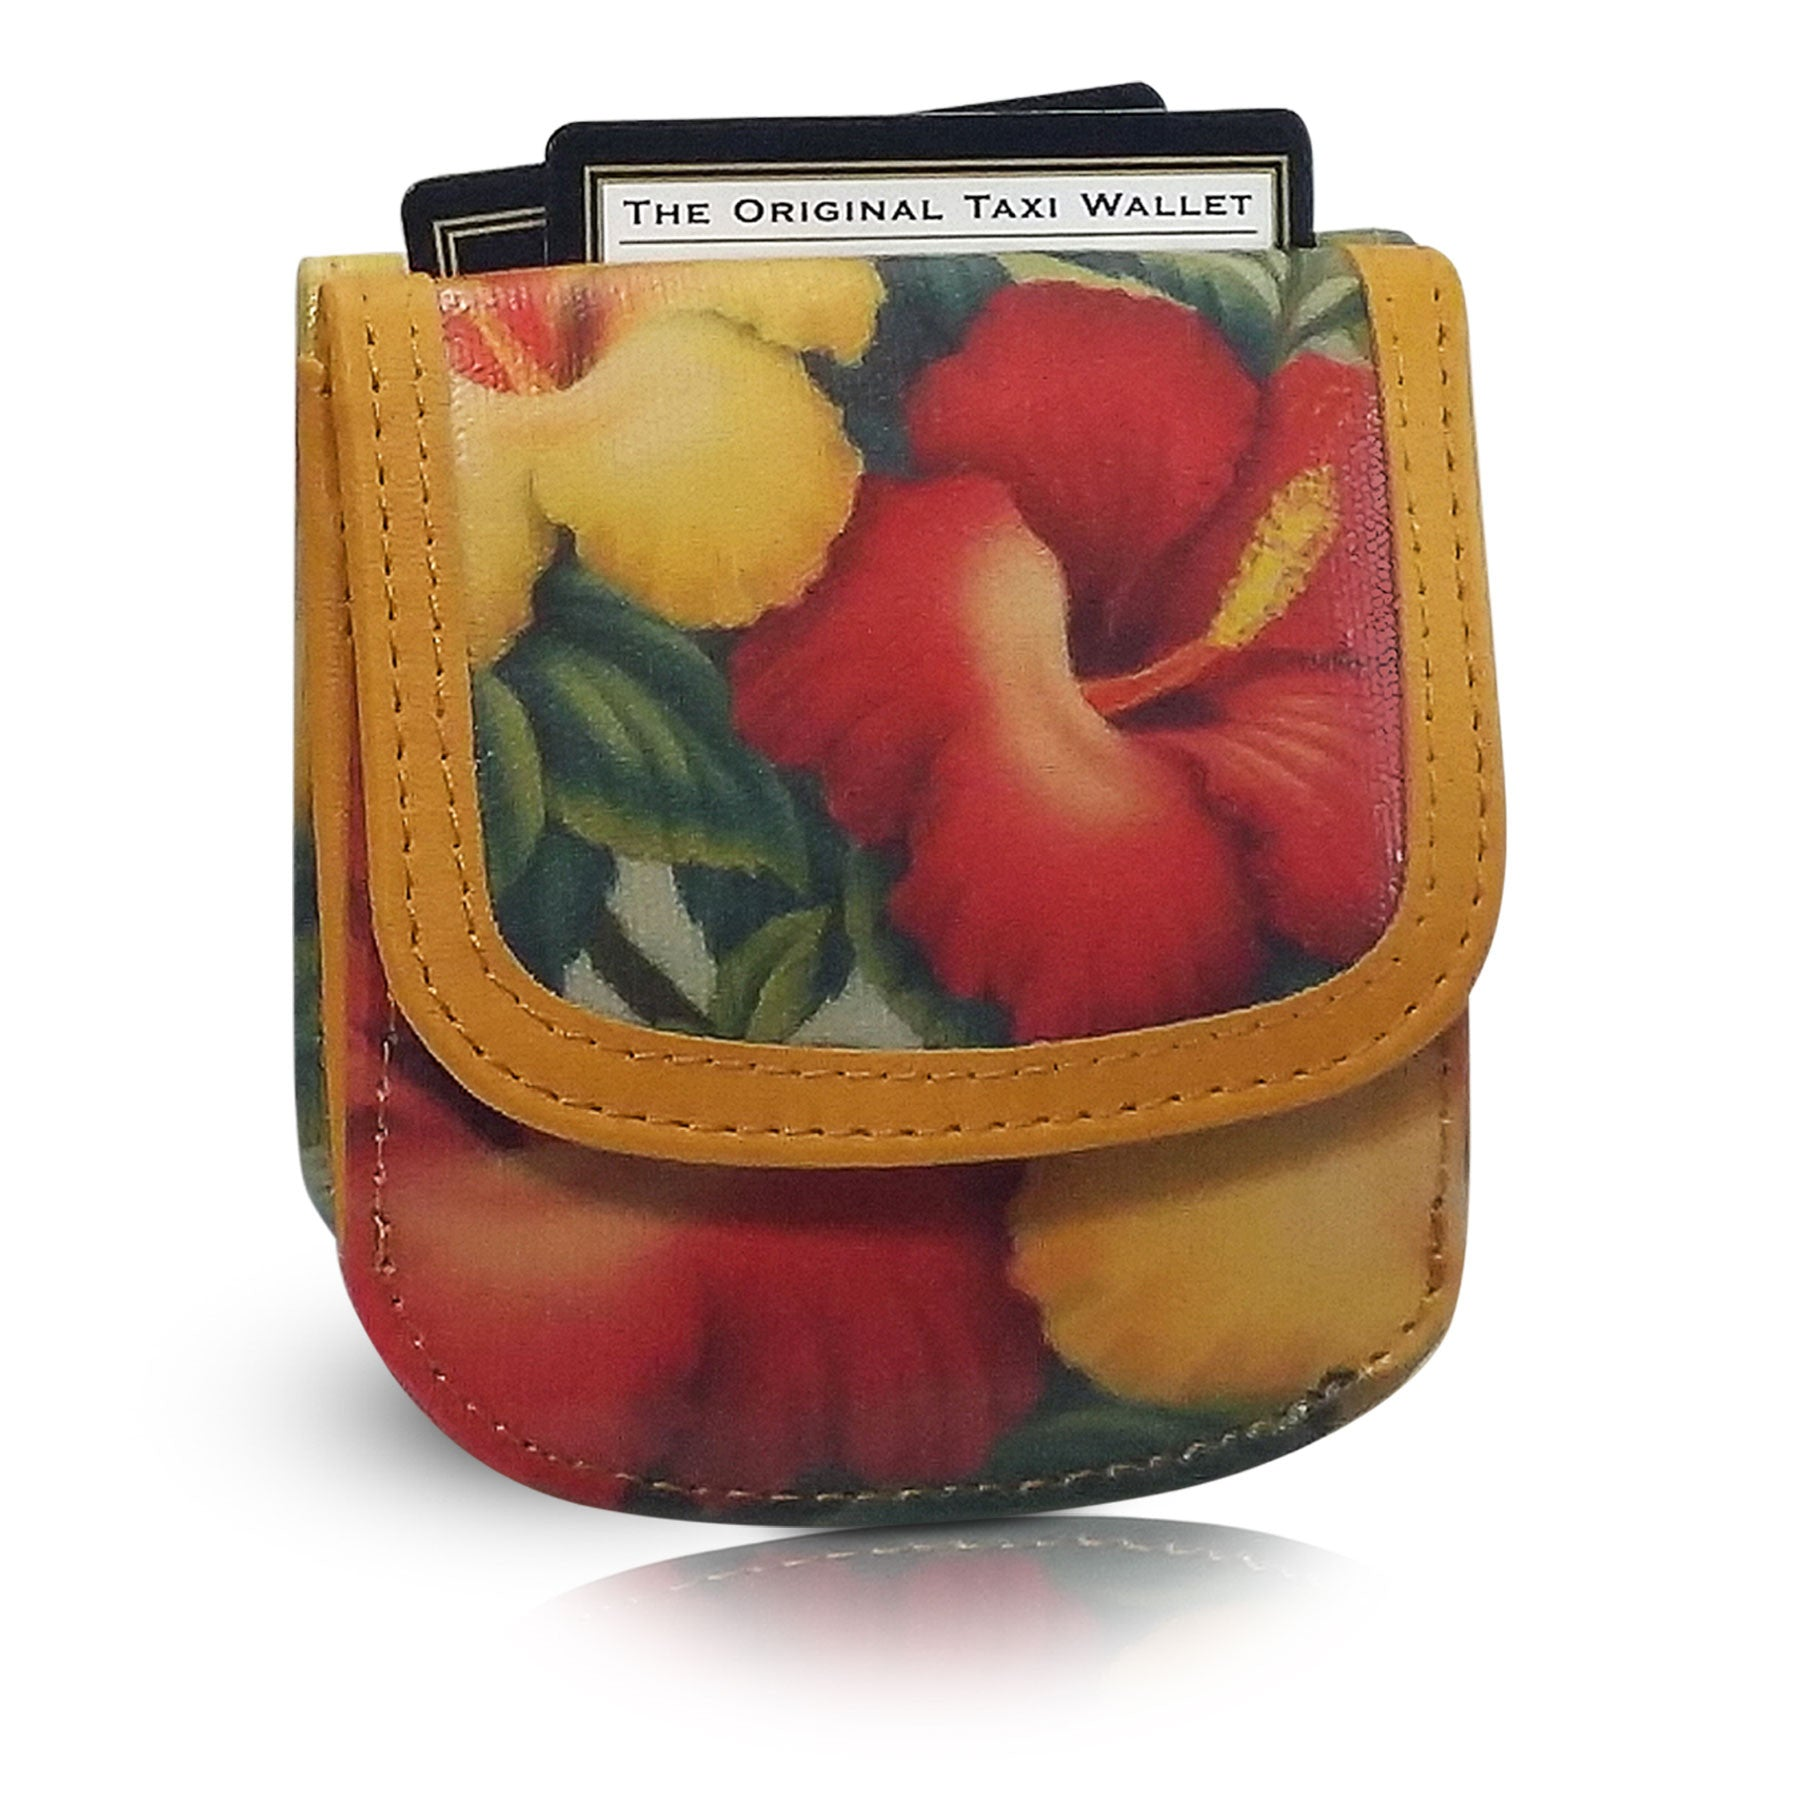 Hawaii Vintage Hibiscus - Small Folding Minimalist Card Wallet for Women Coin Purse by TAXI WALLET®